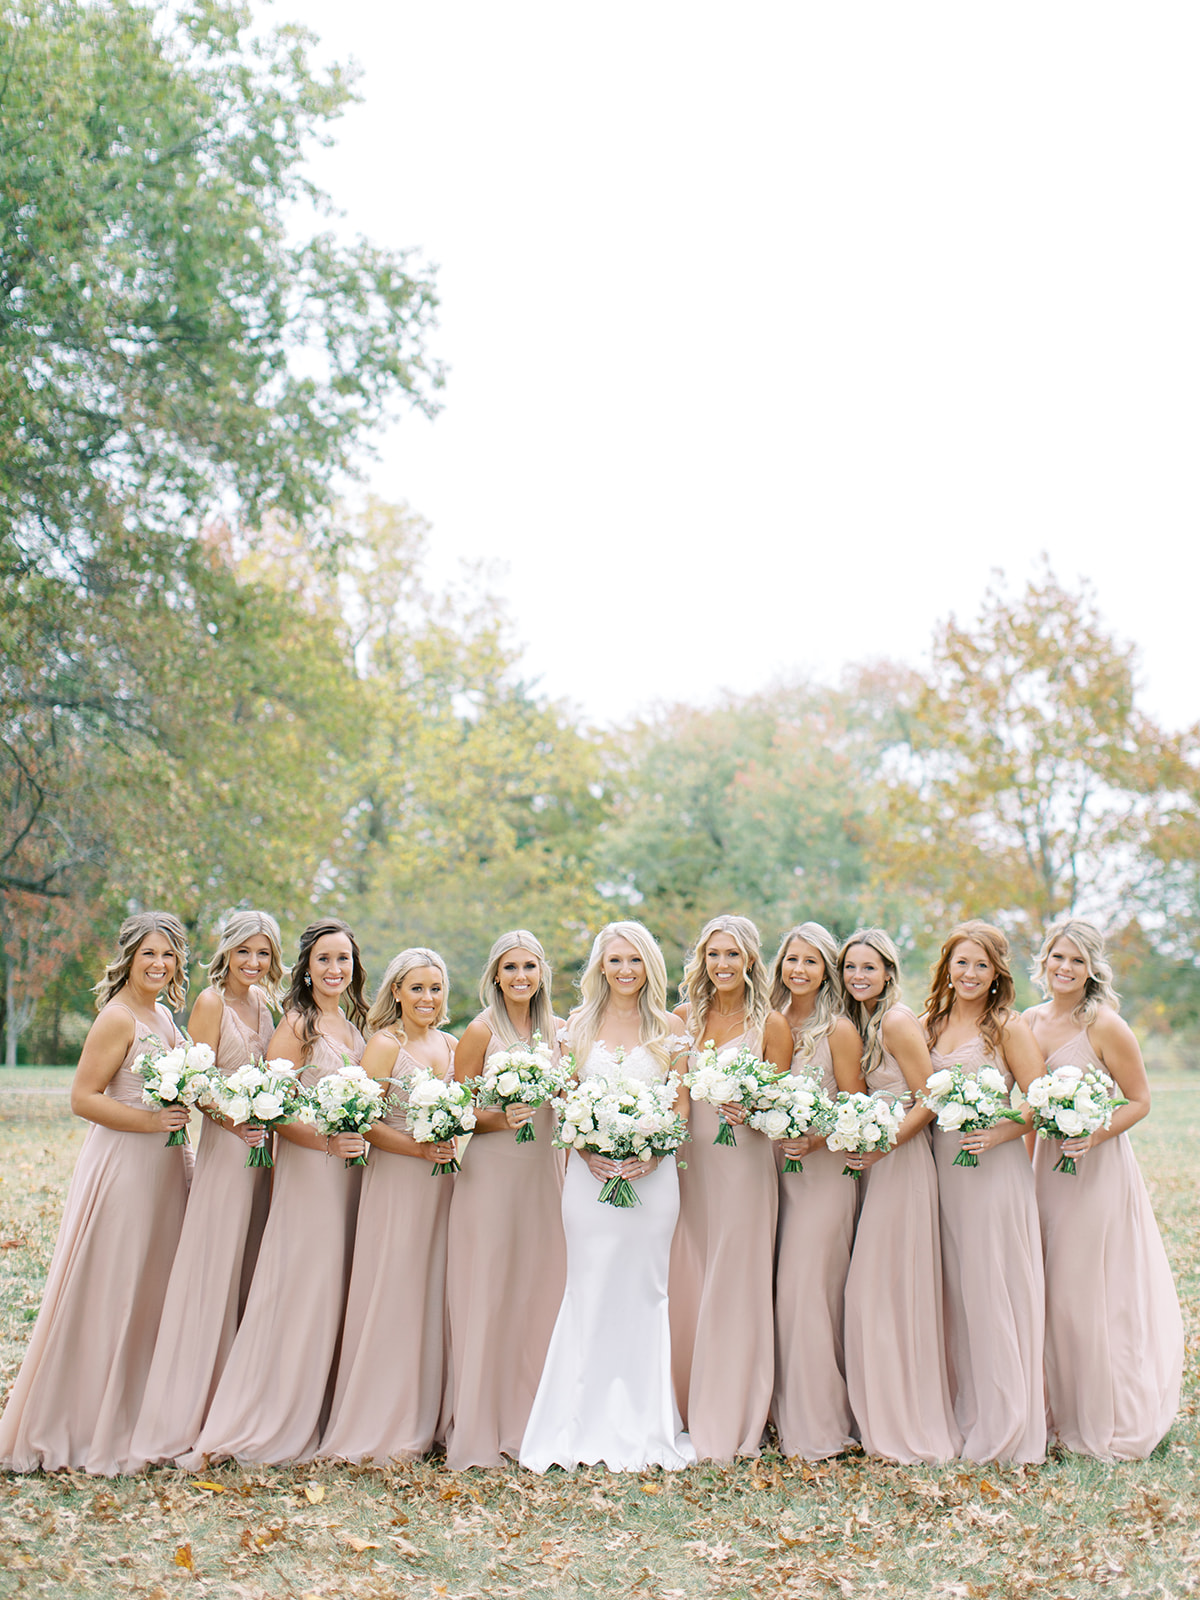 Bride standing with bridesmaids holding bouquets